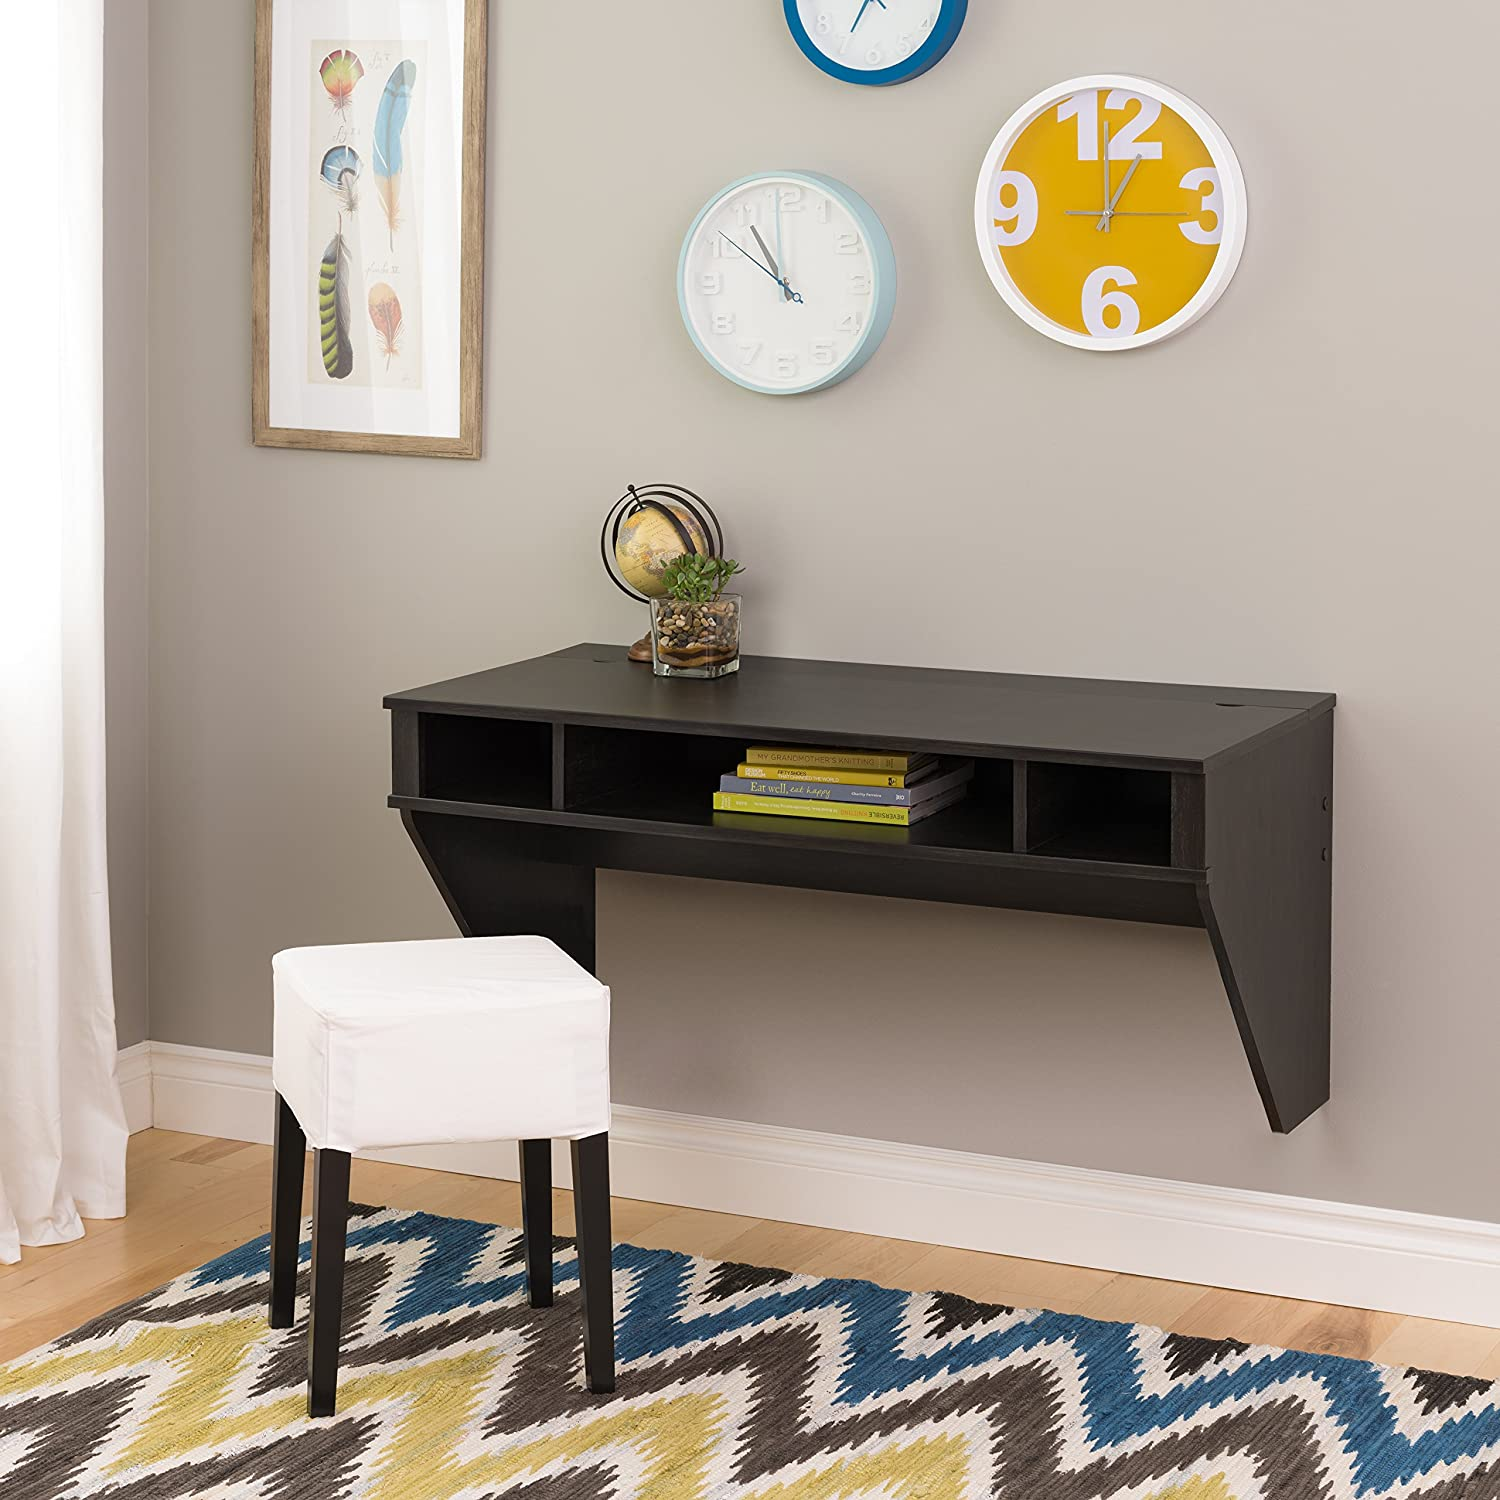 office wall desk. amazon.com: prepac wall mounted designer floating desk in washed ebony: kitchen \u0026 dining office d